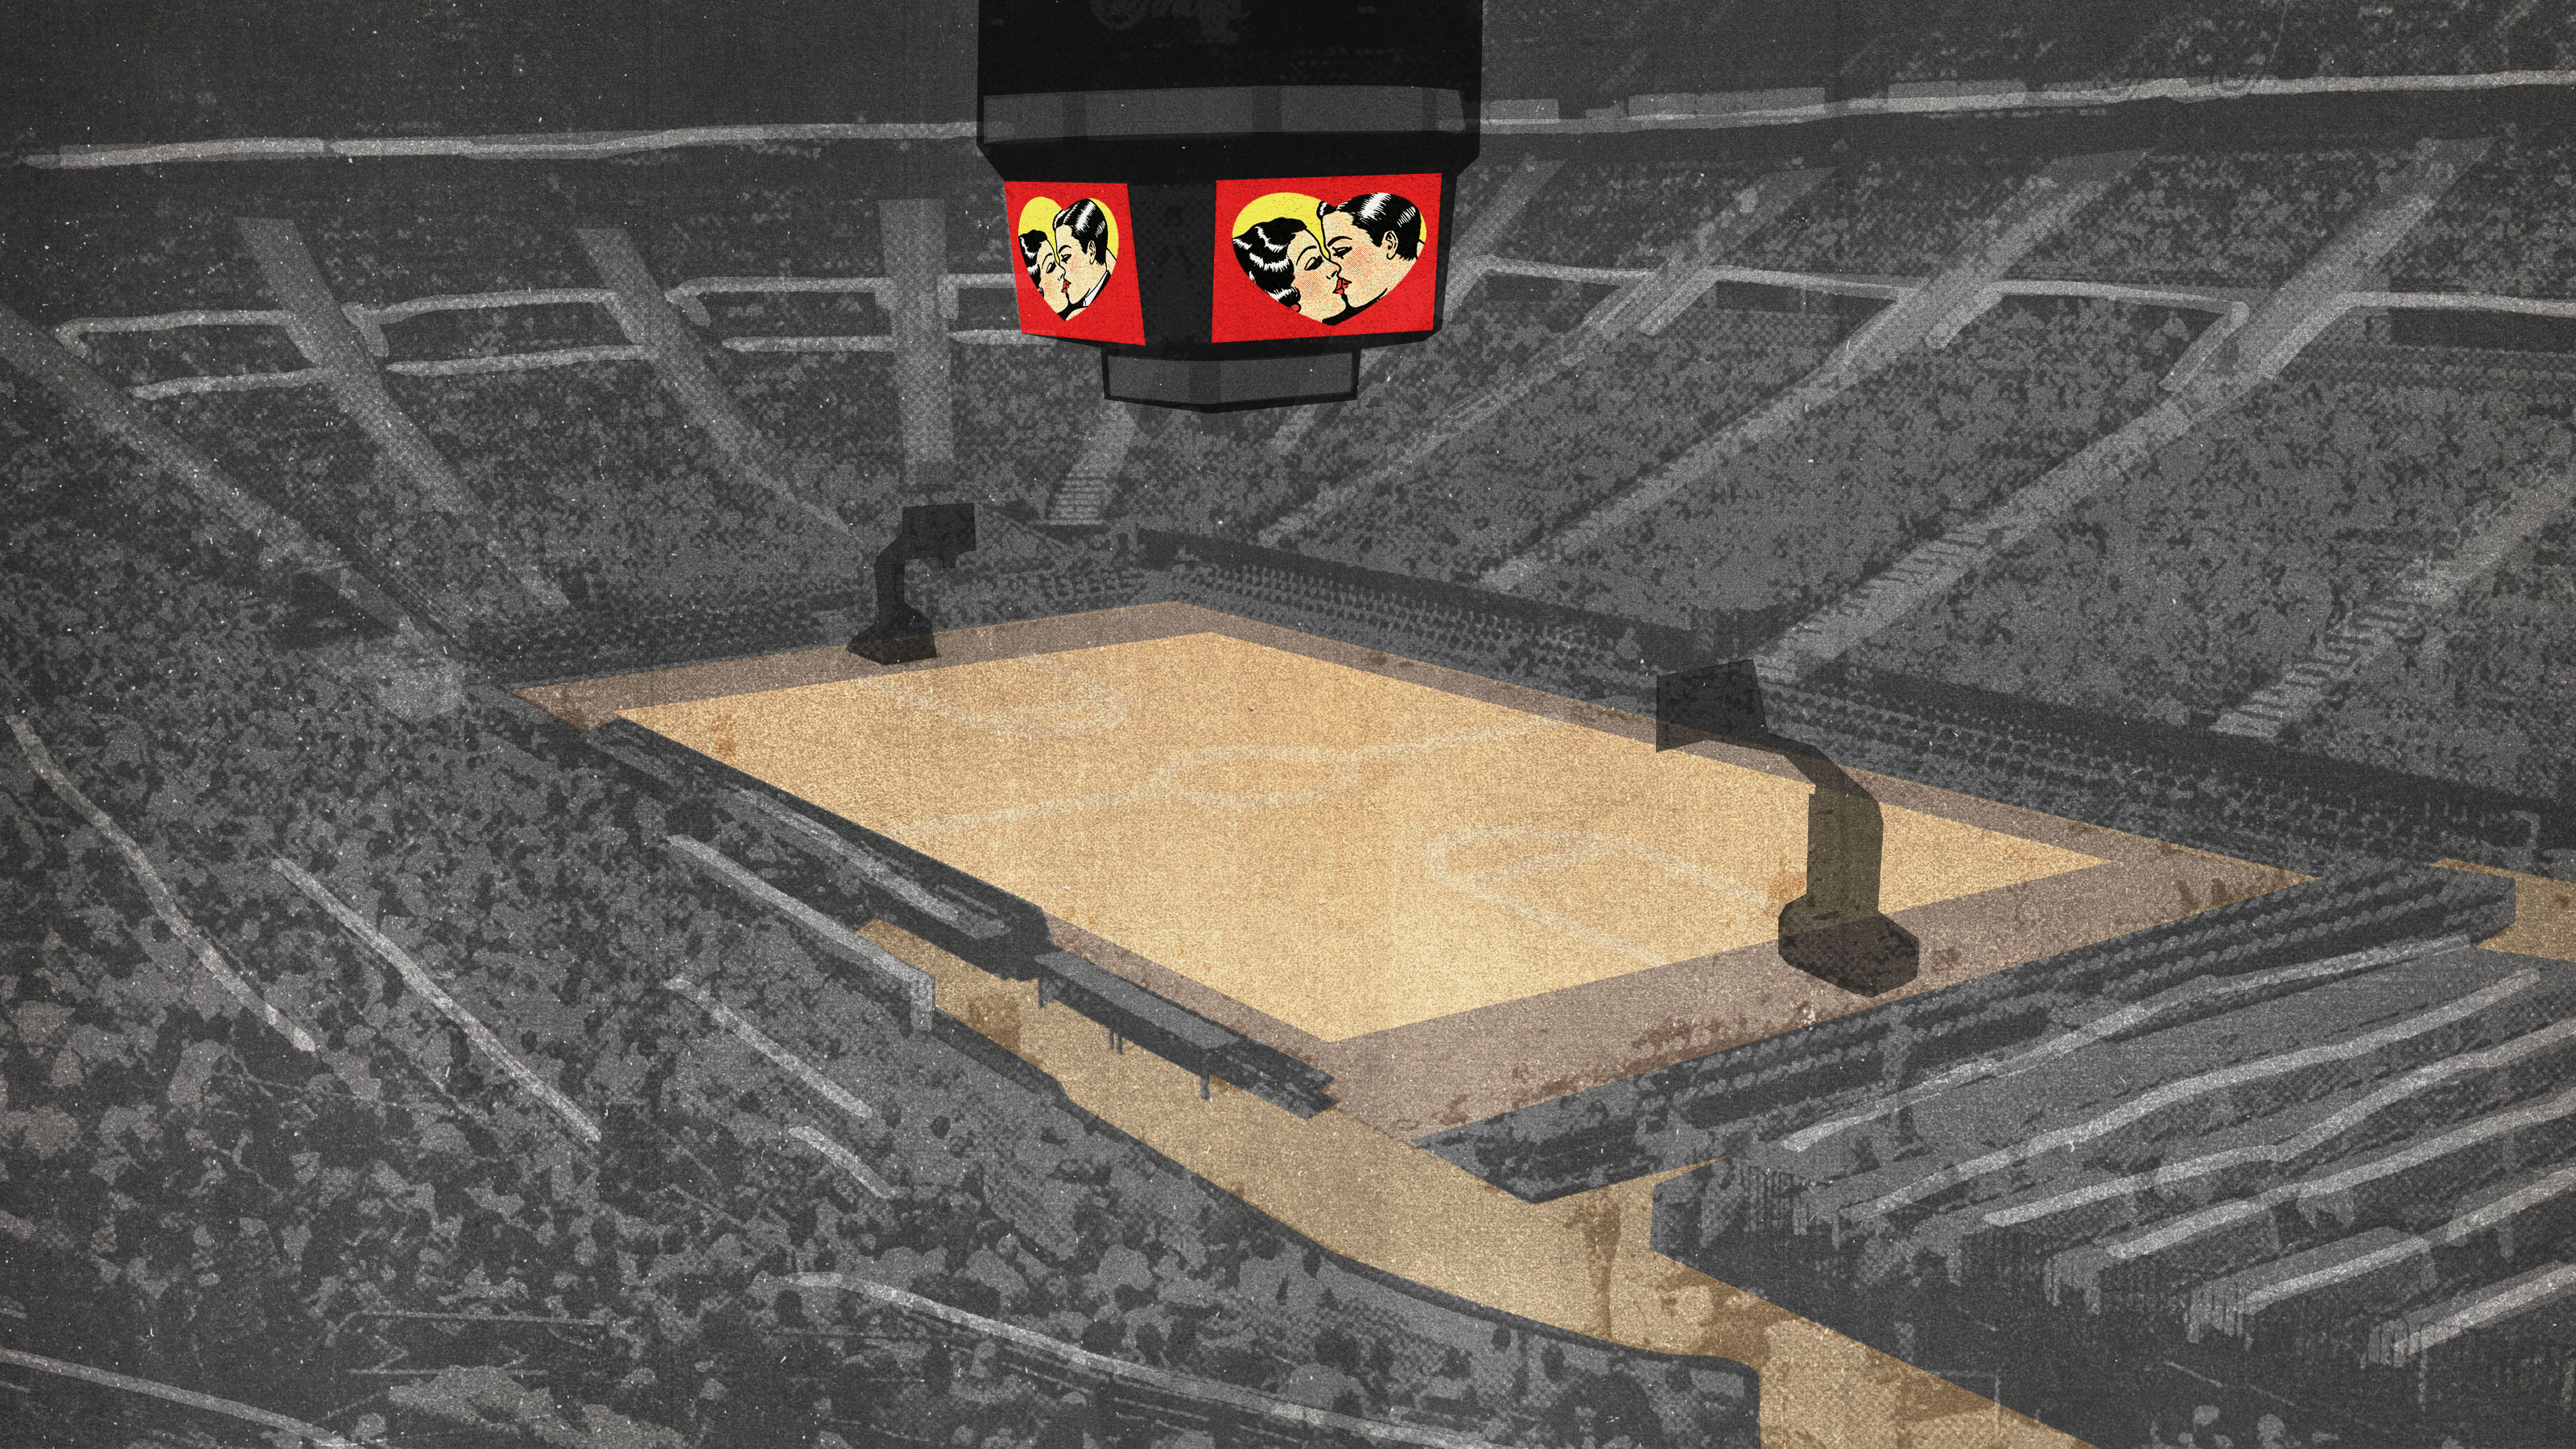 Illustration of an arena with a kiss cam on the Jumbotron